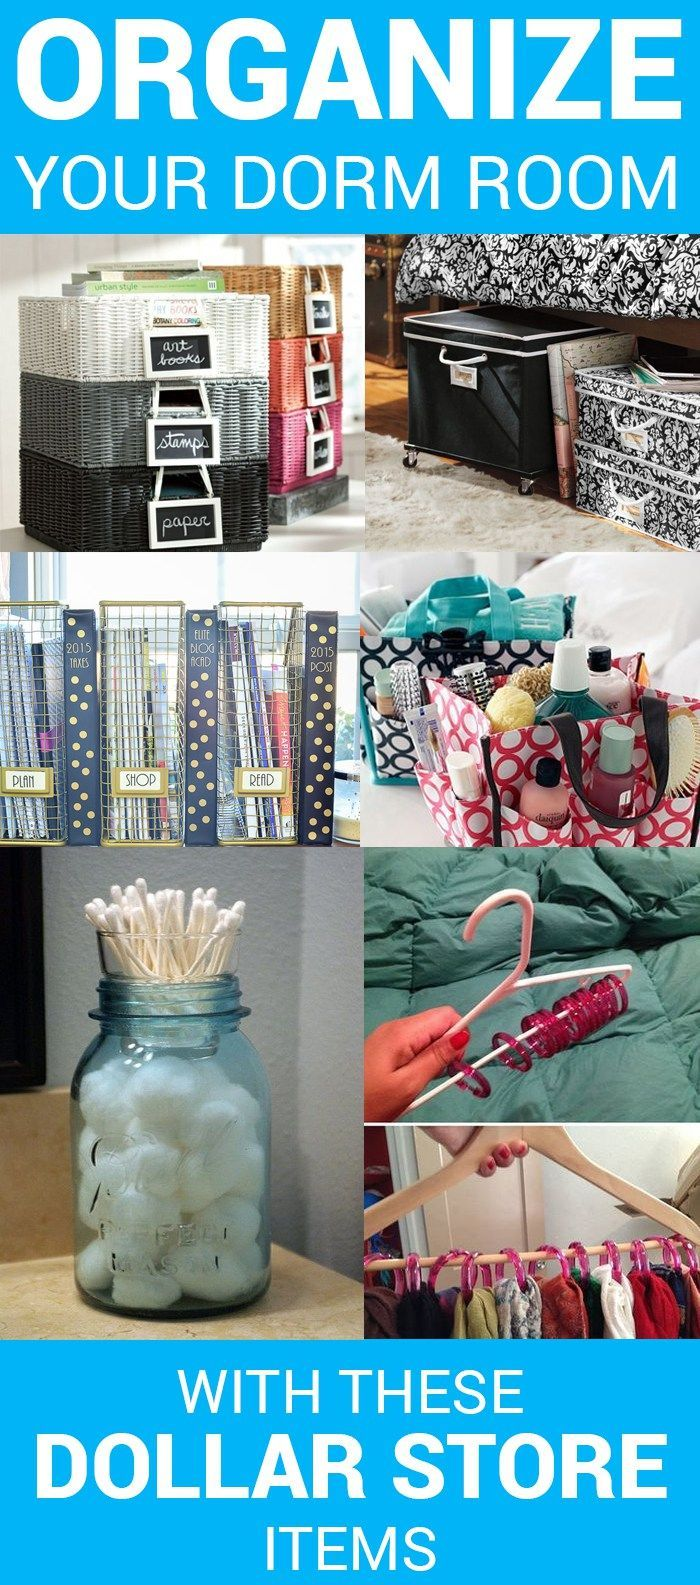 Dollar tree items to help keep your dorm room organized.